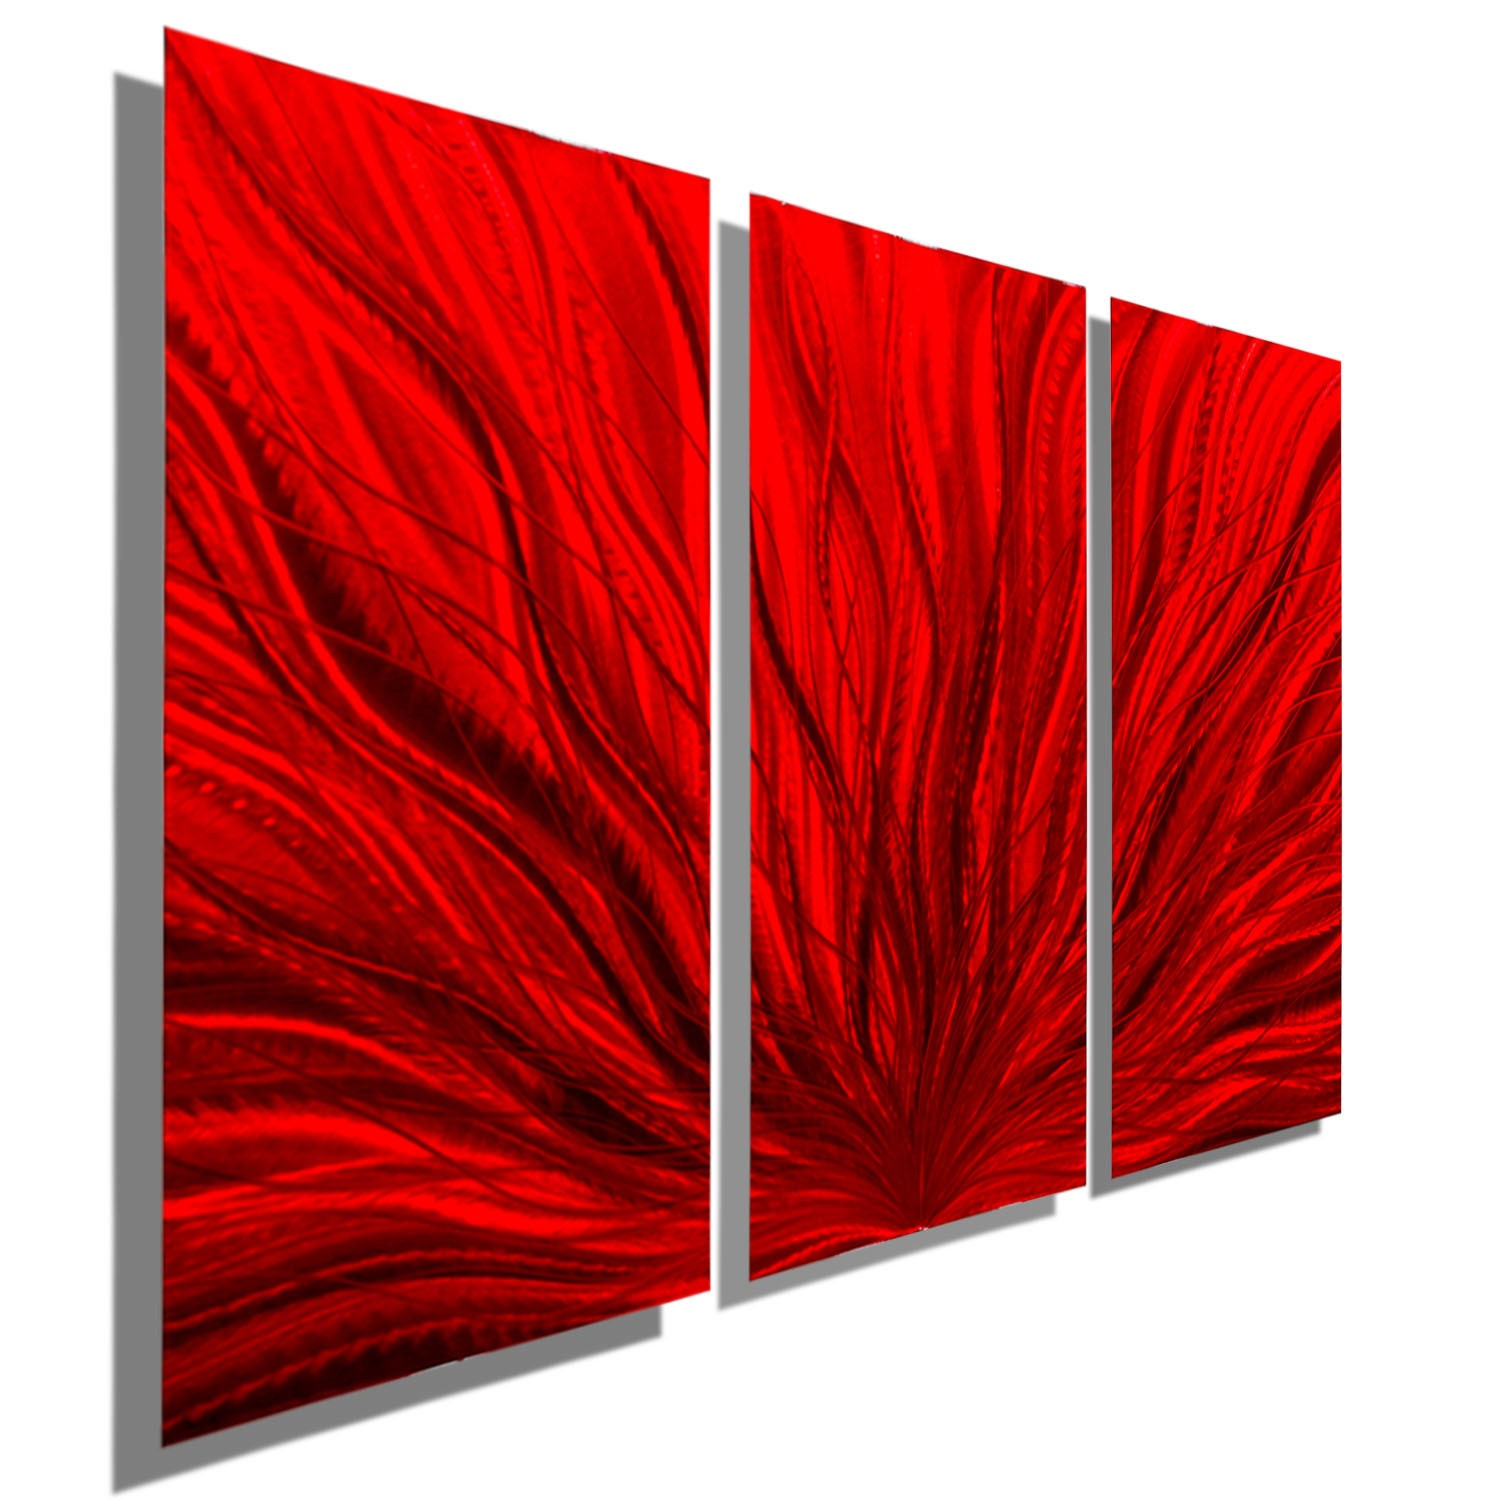 Large 3 Panel Decorative Metal Wall Art In Red Contemporary